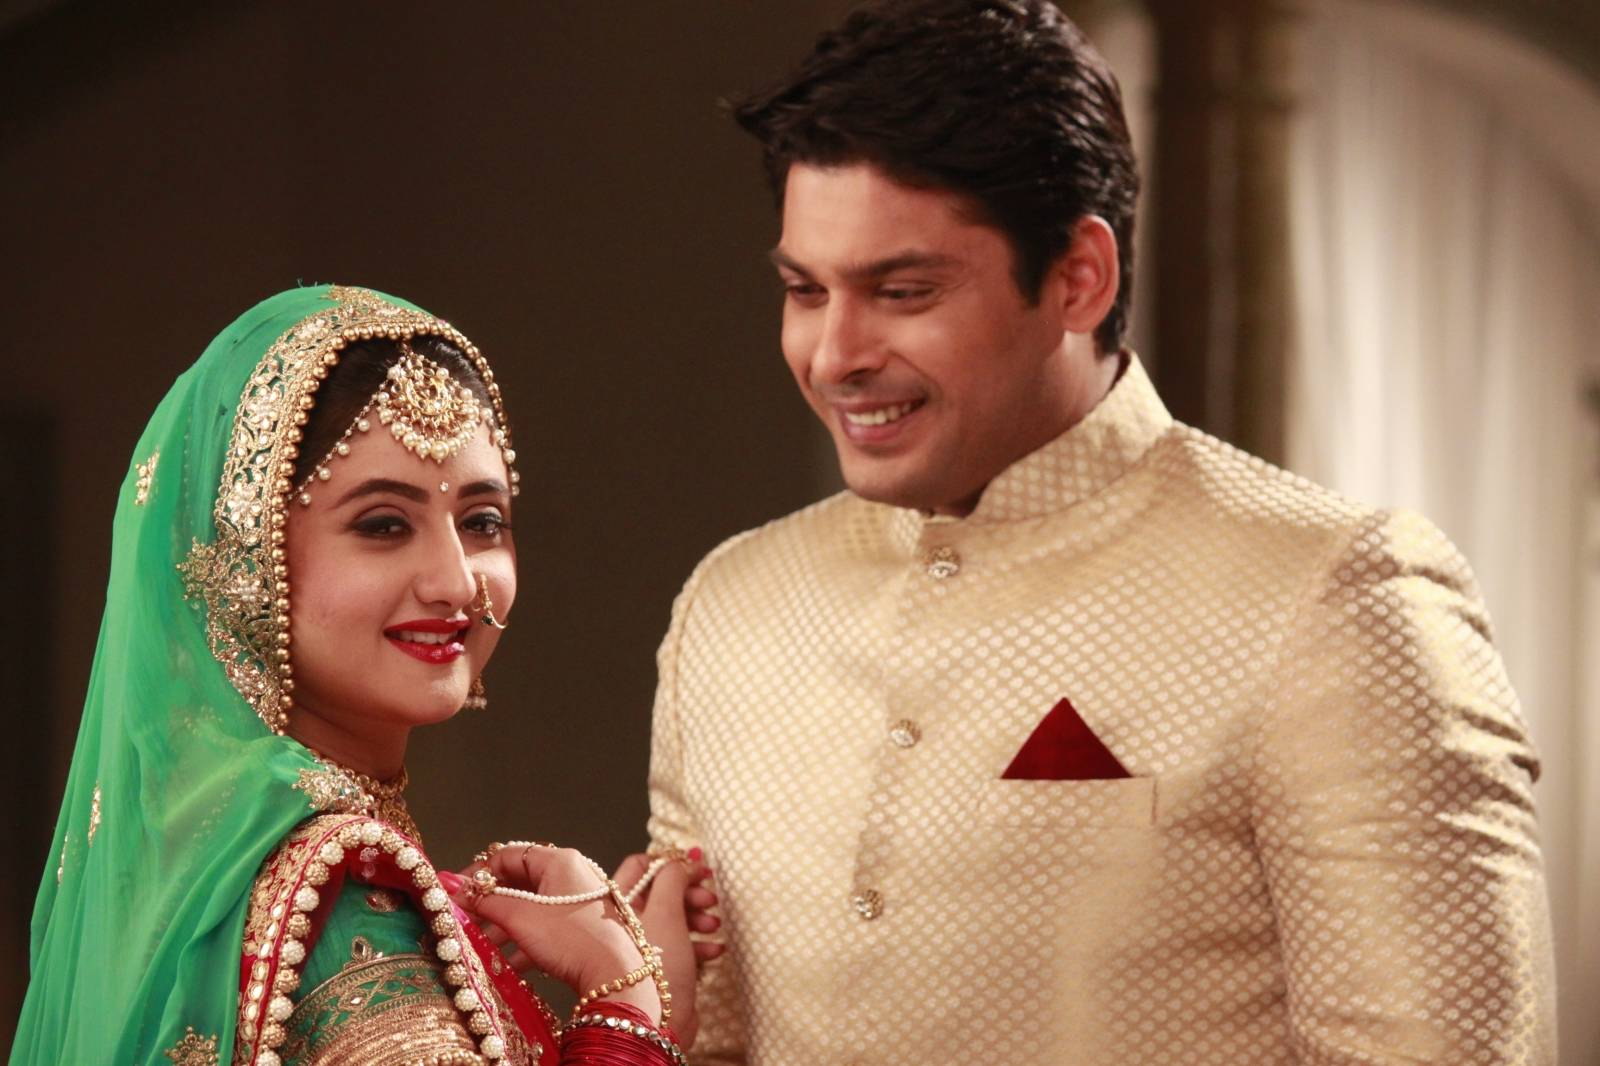 Parth & Shorvari's pictures will make you fall in love with the couple